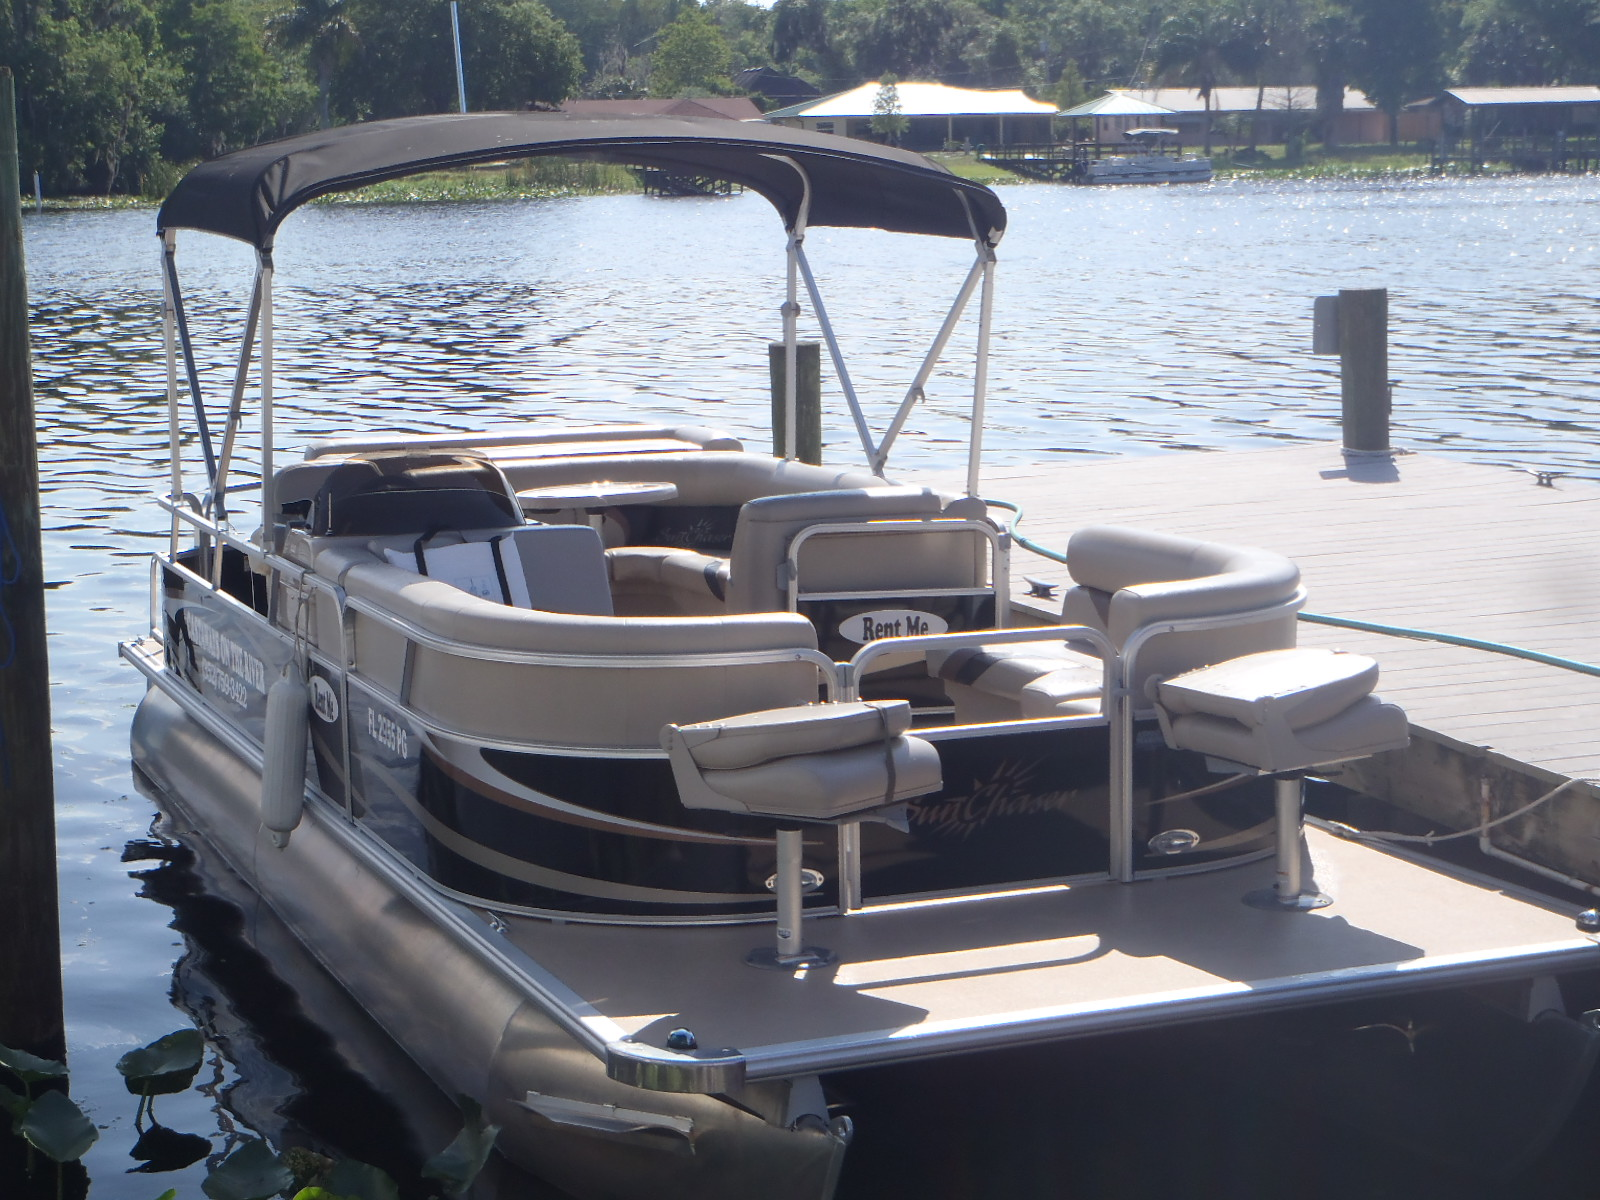 Grady Pontoon - Boat Rental